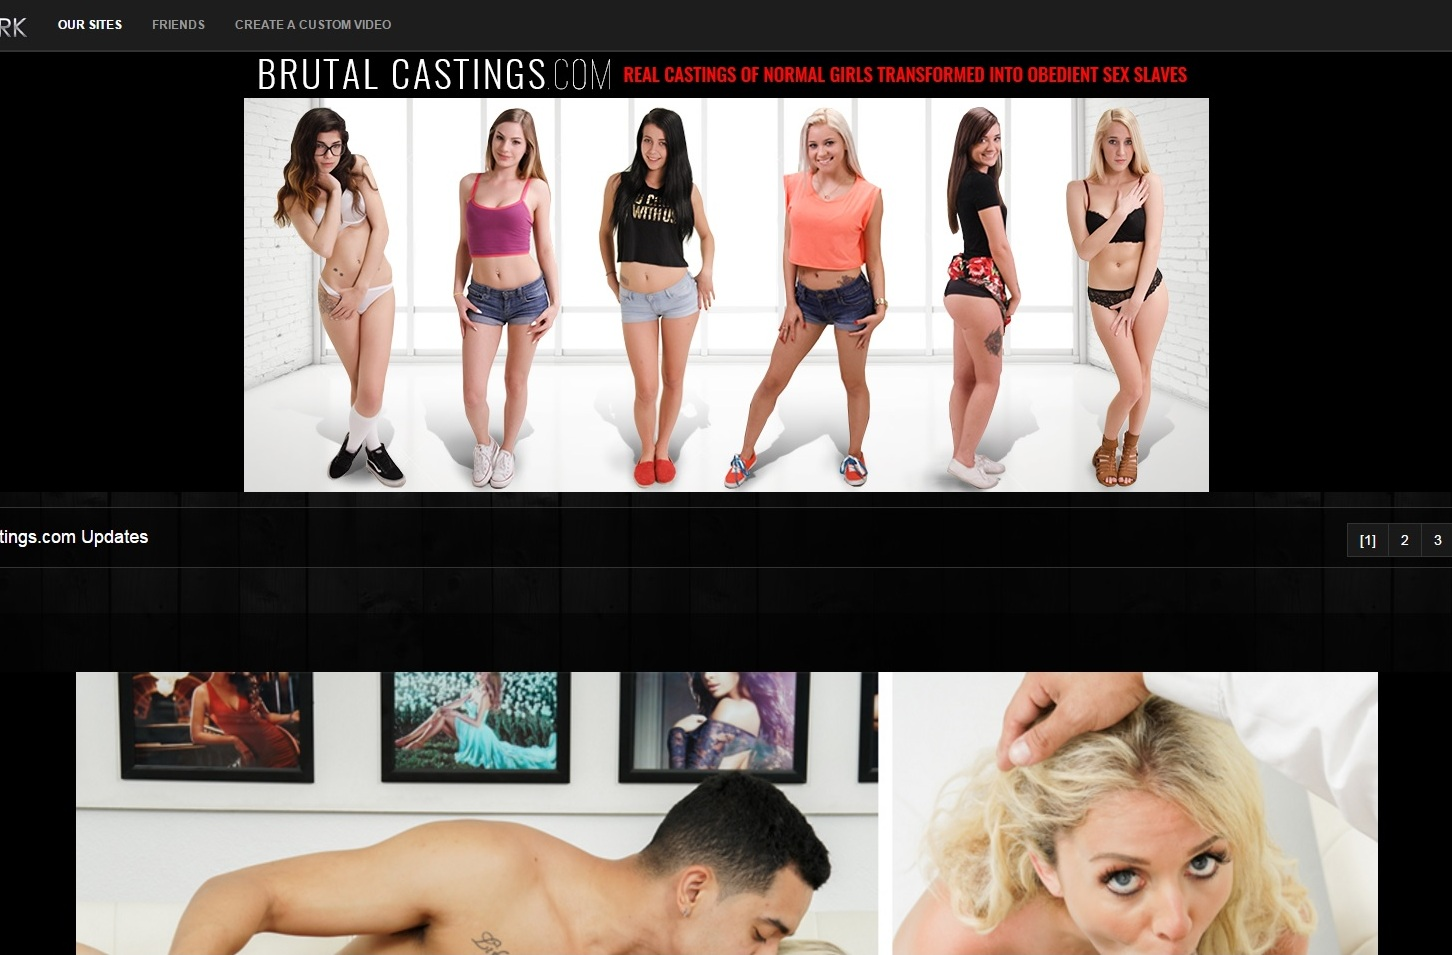 02 BrutalCastings M - BrutalCastings.com - Full SiteRip! Exclusive BDSM Castings Video